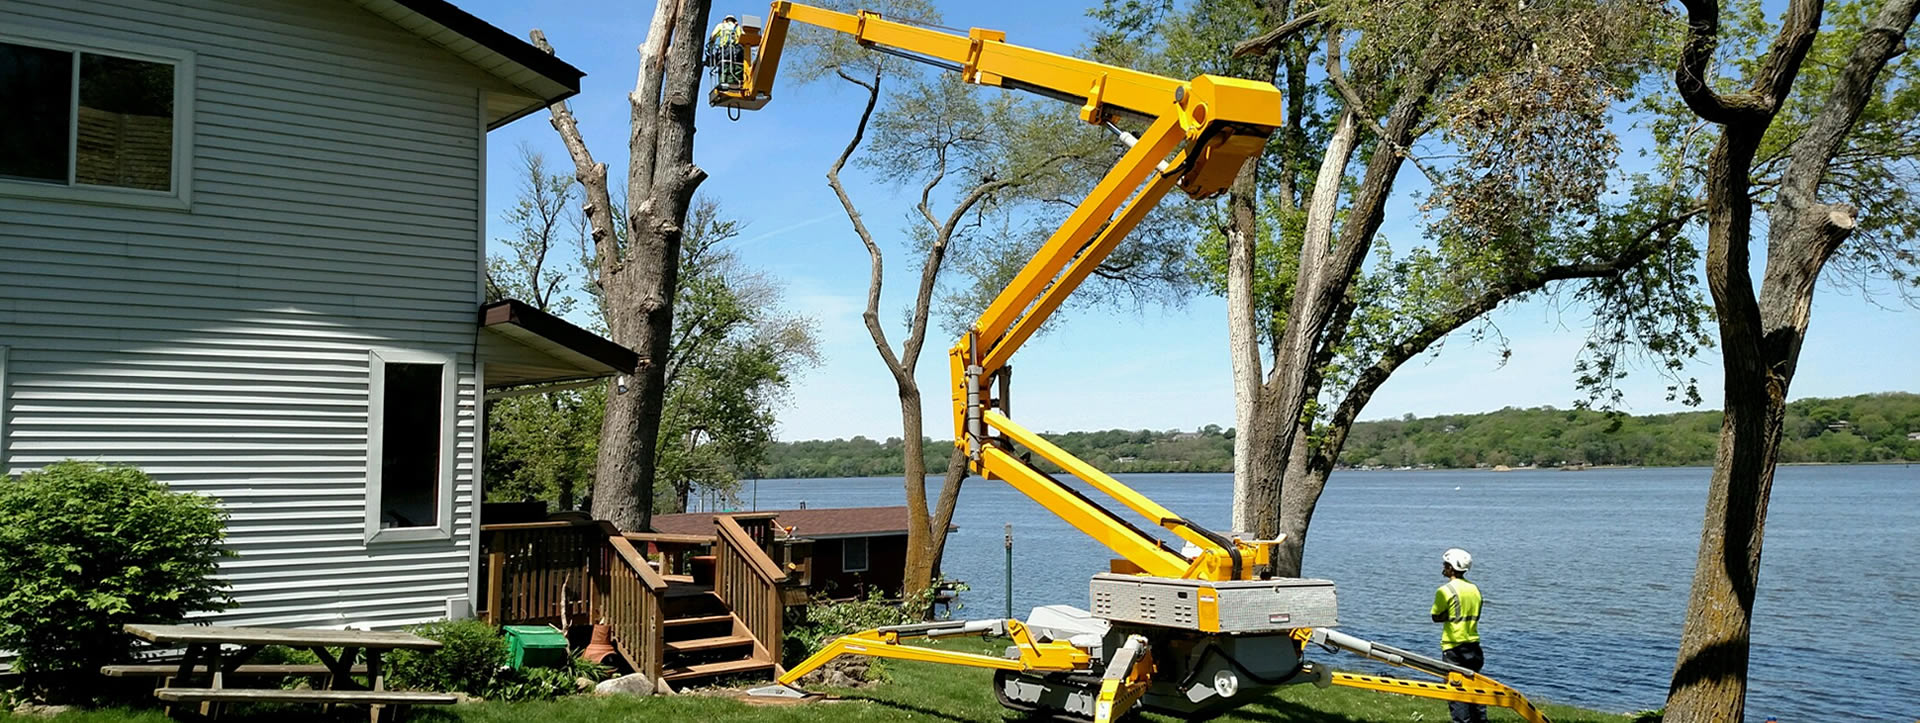 Tree Removal Experts Greater Orange County Seminole County Lake County